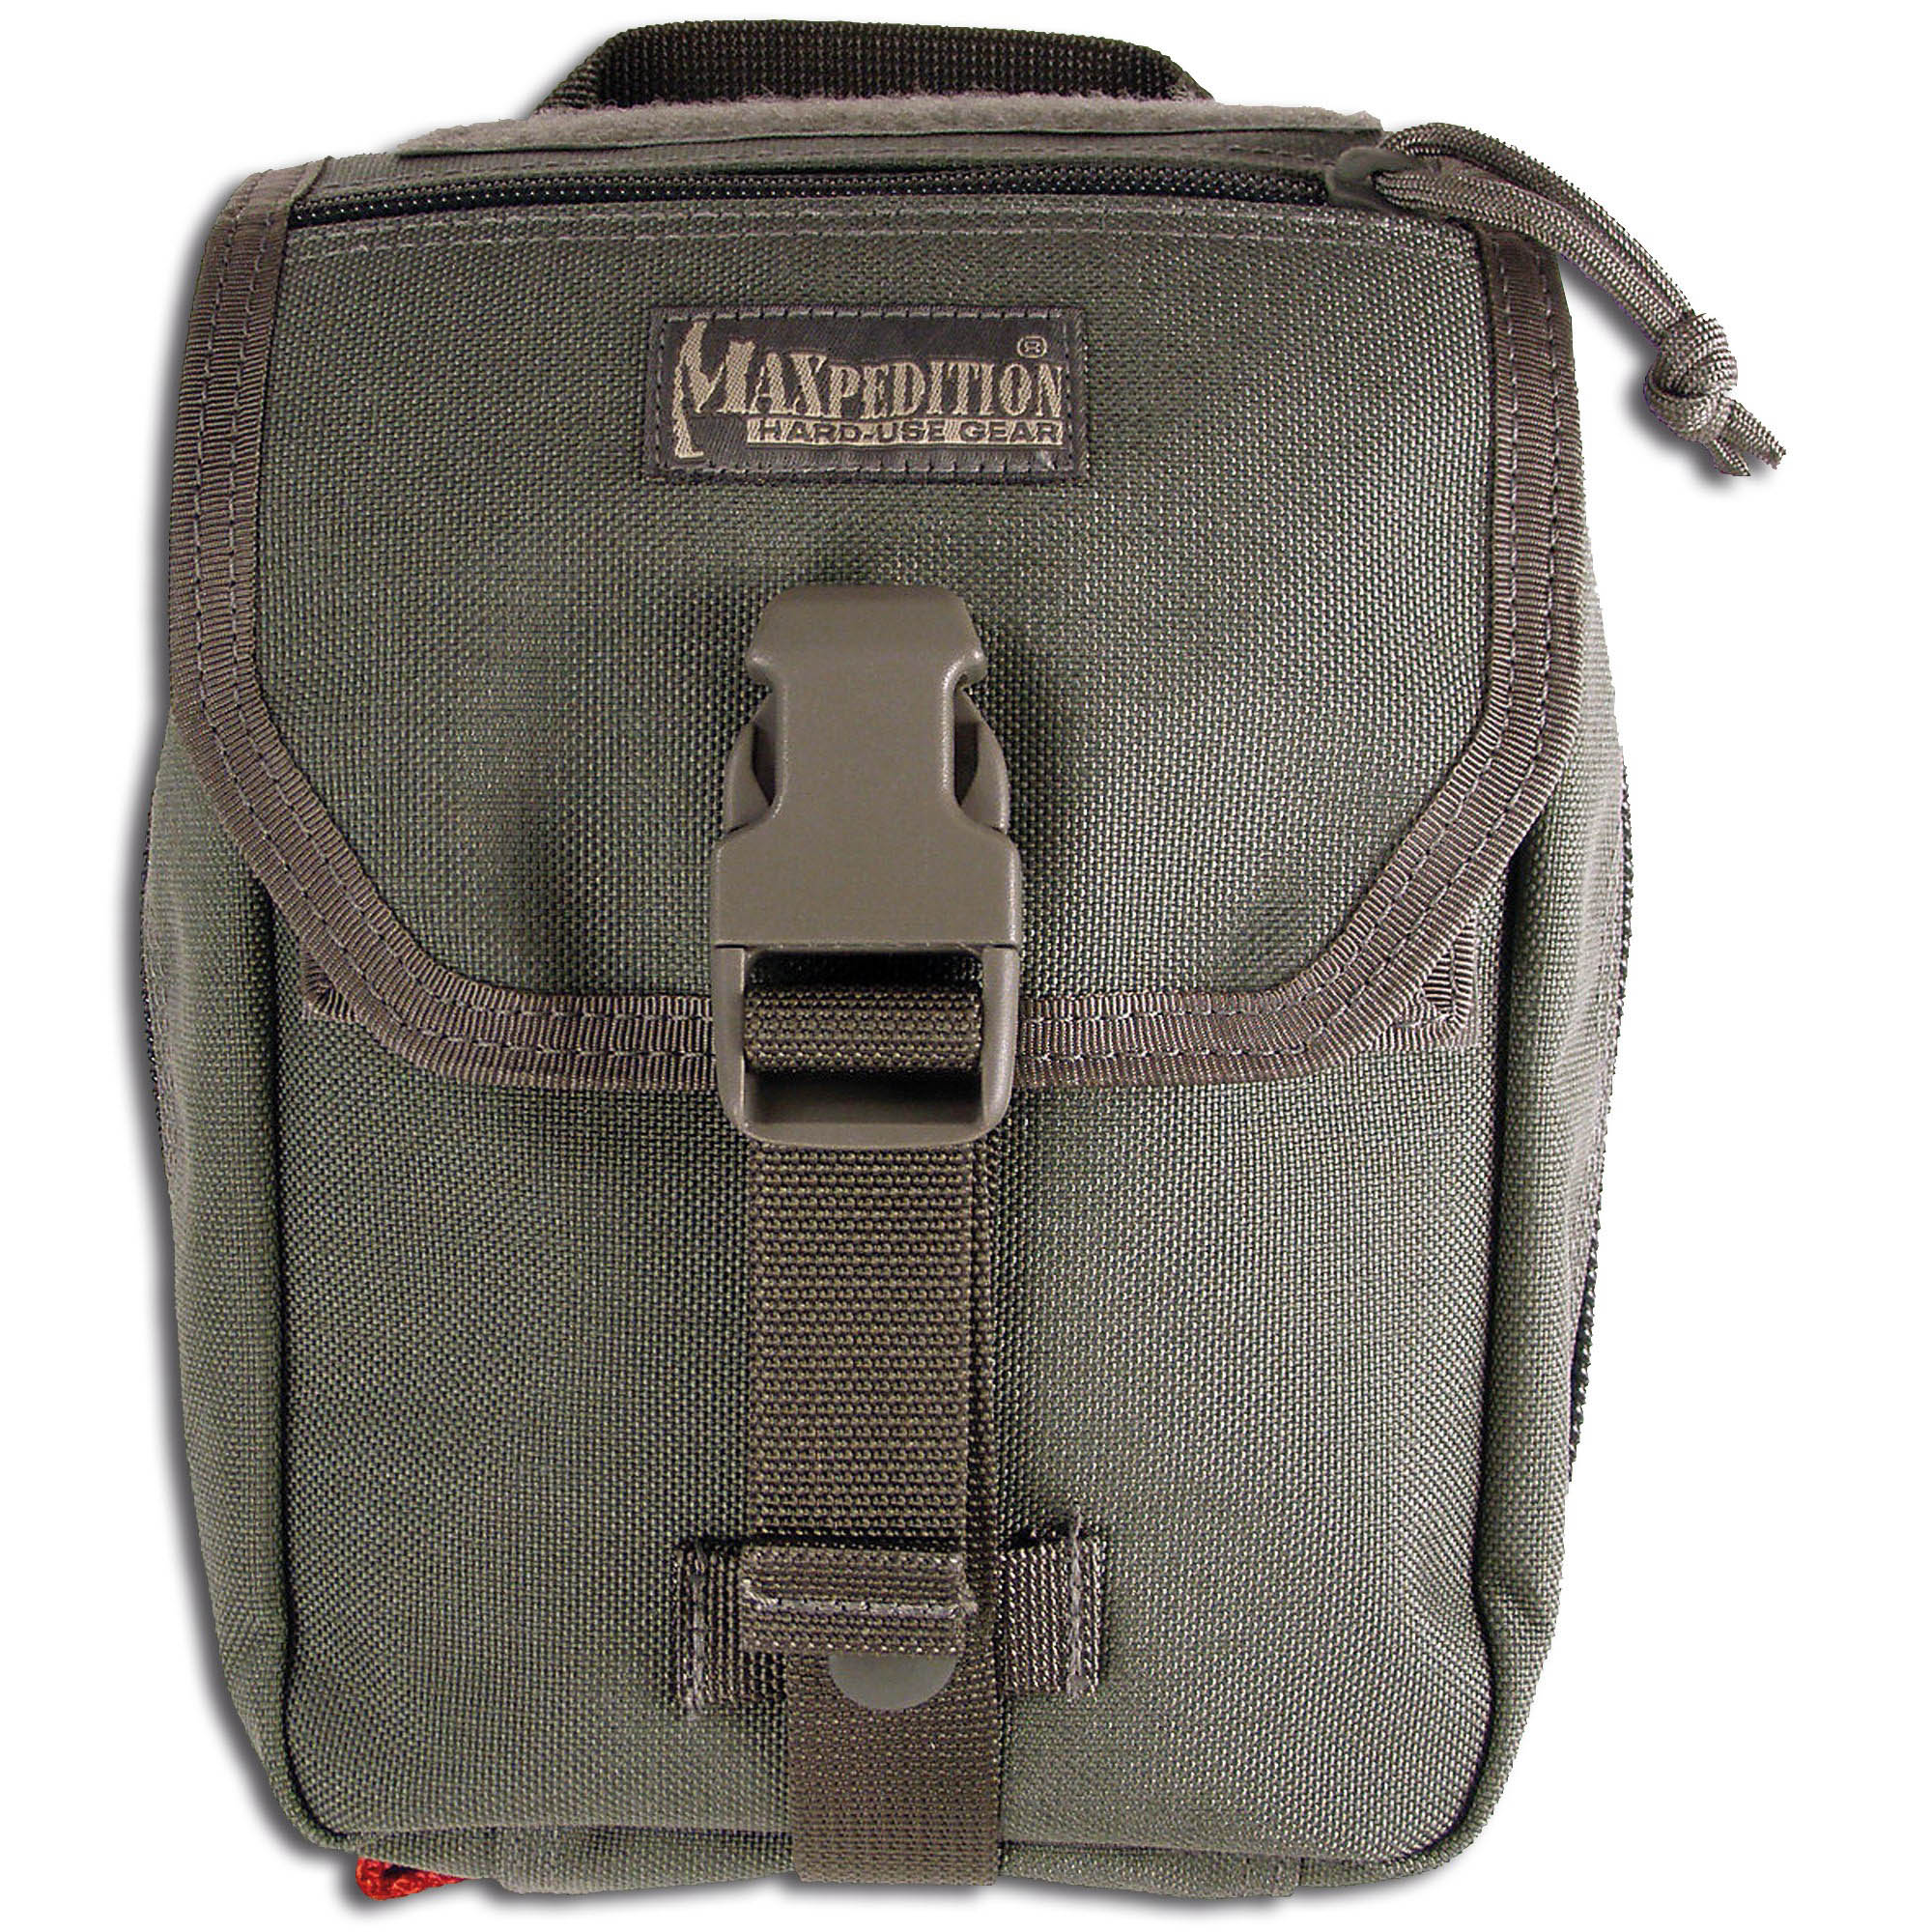 Maxpedition estuche F.I.G.H.T. Medical Pouch foliage